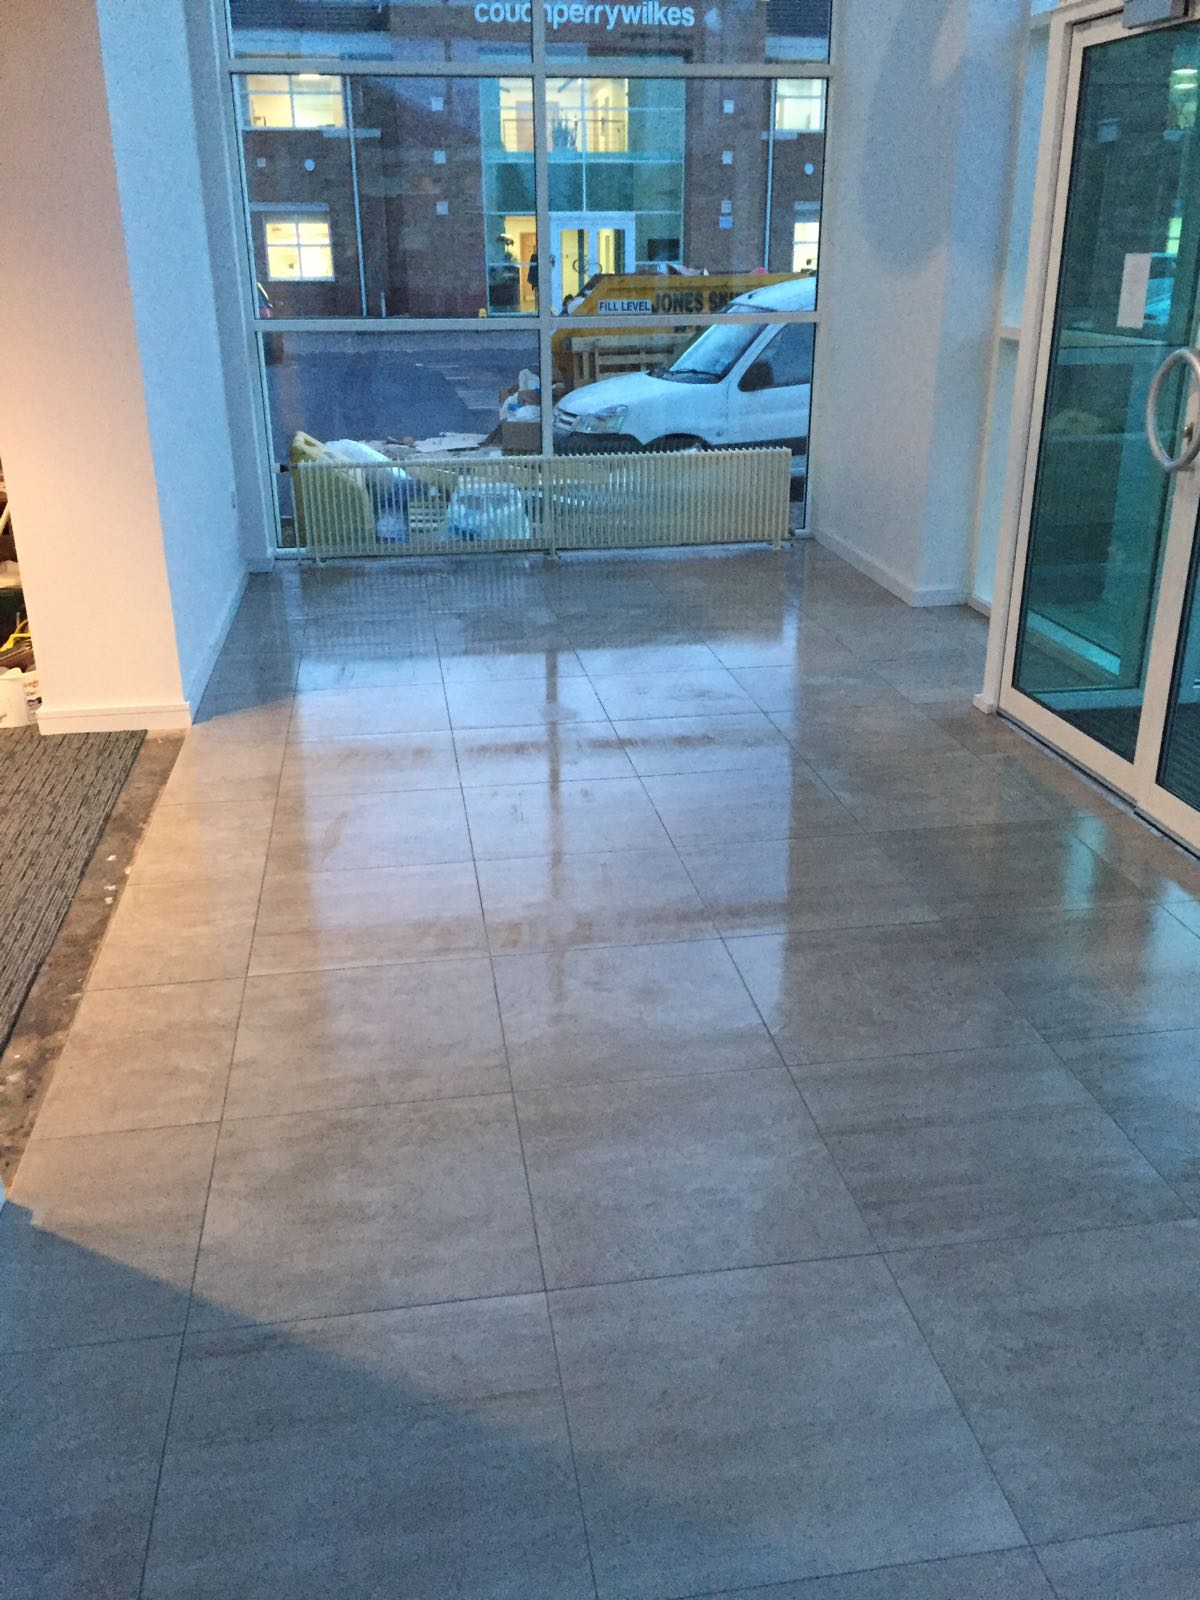 WhatsApp Image 2017-12-11 at 17.15.39(2) - Birmingham Tiling Specialists